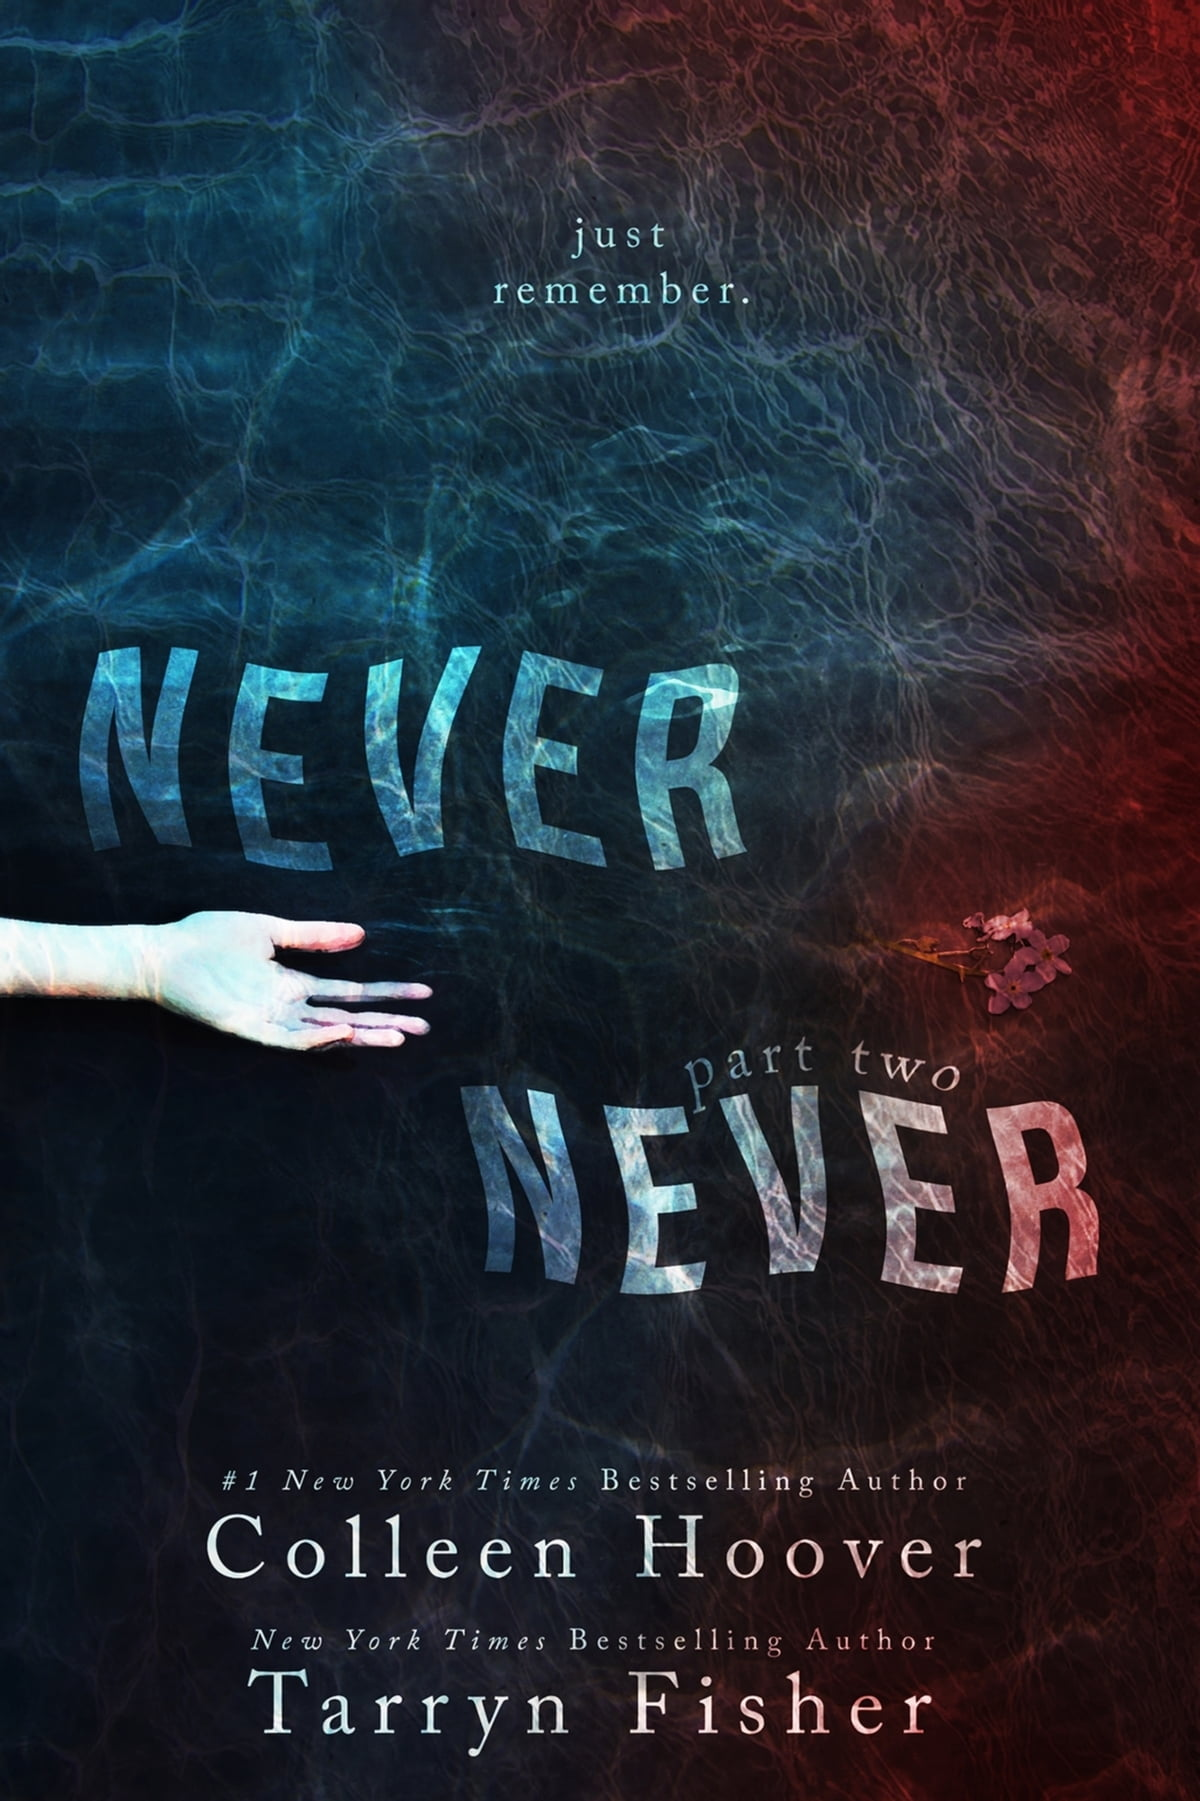 Never Never: Part Two Ebook By Colleen Hoover, Tarryn Fisher